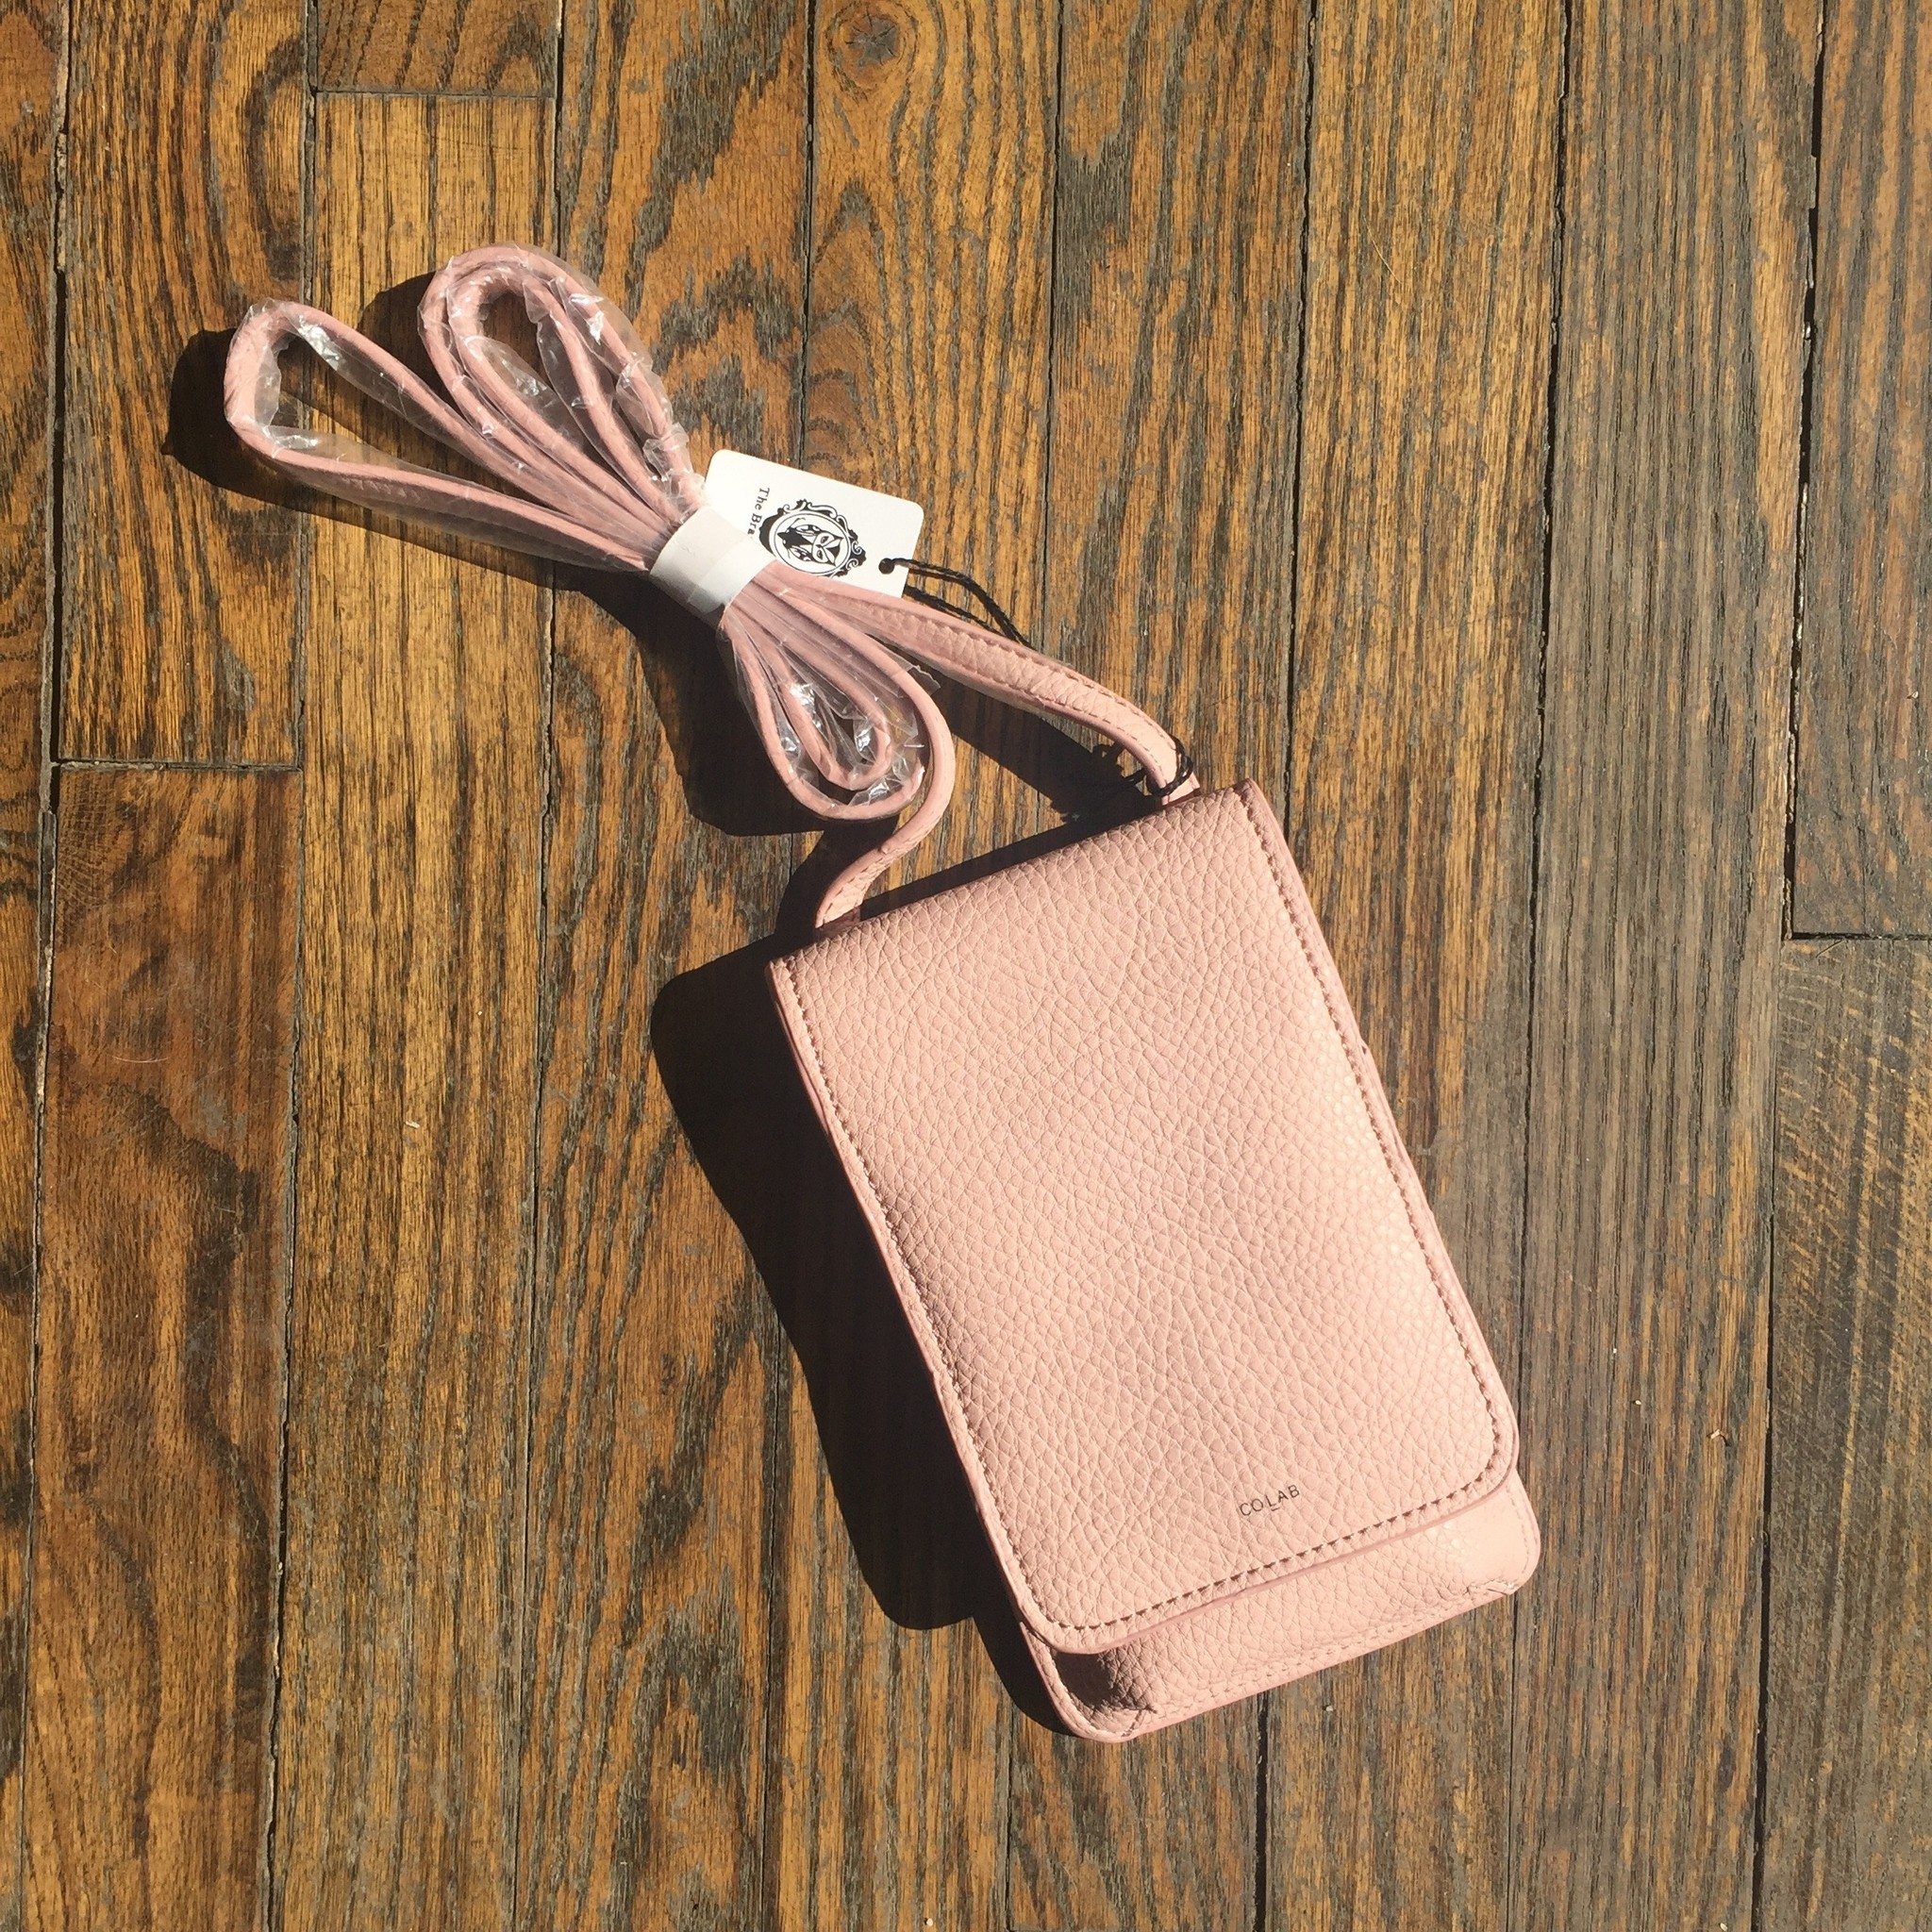 Colab PVC Phone Xbody - Cotton Candy